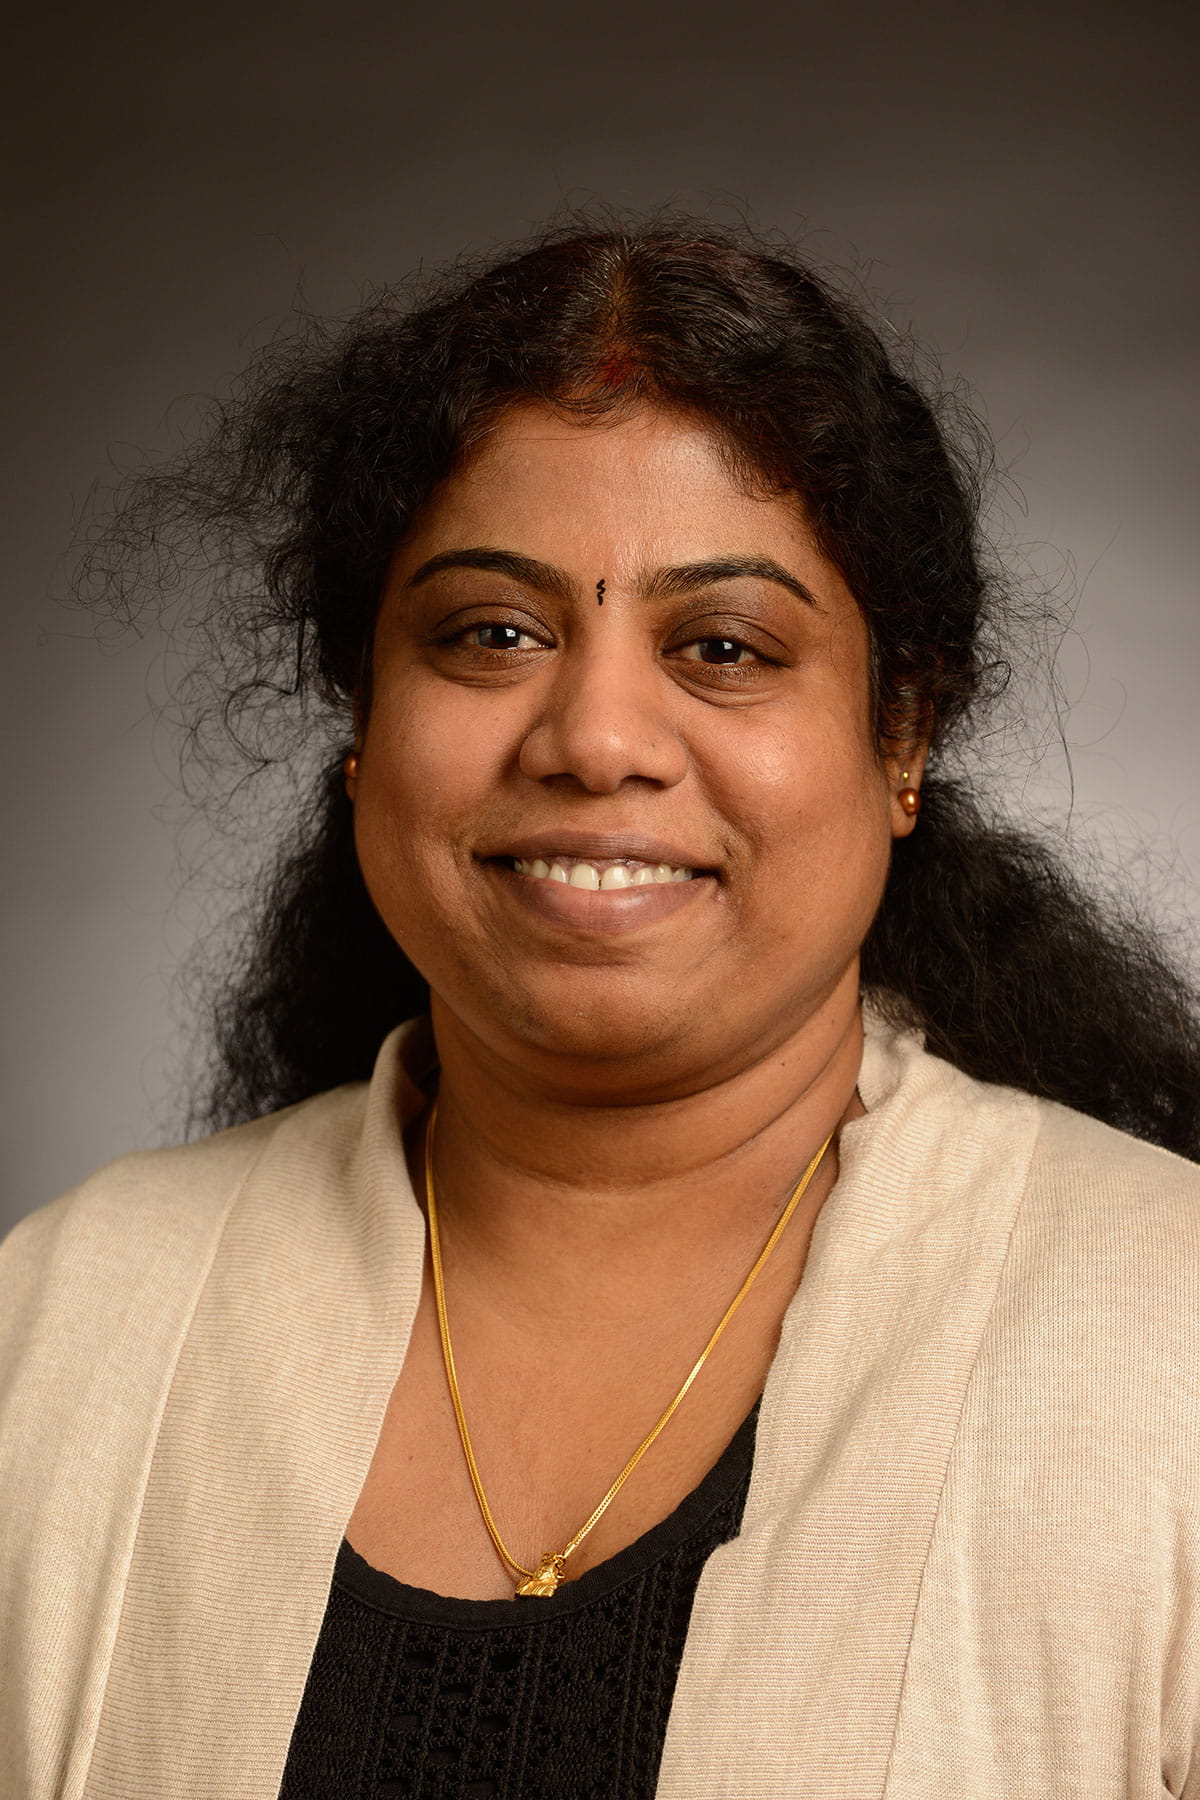 A photo of Paritha Arumugam.